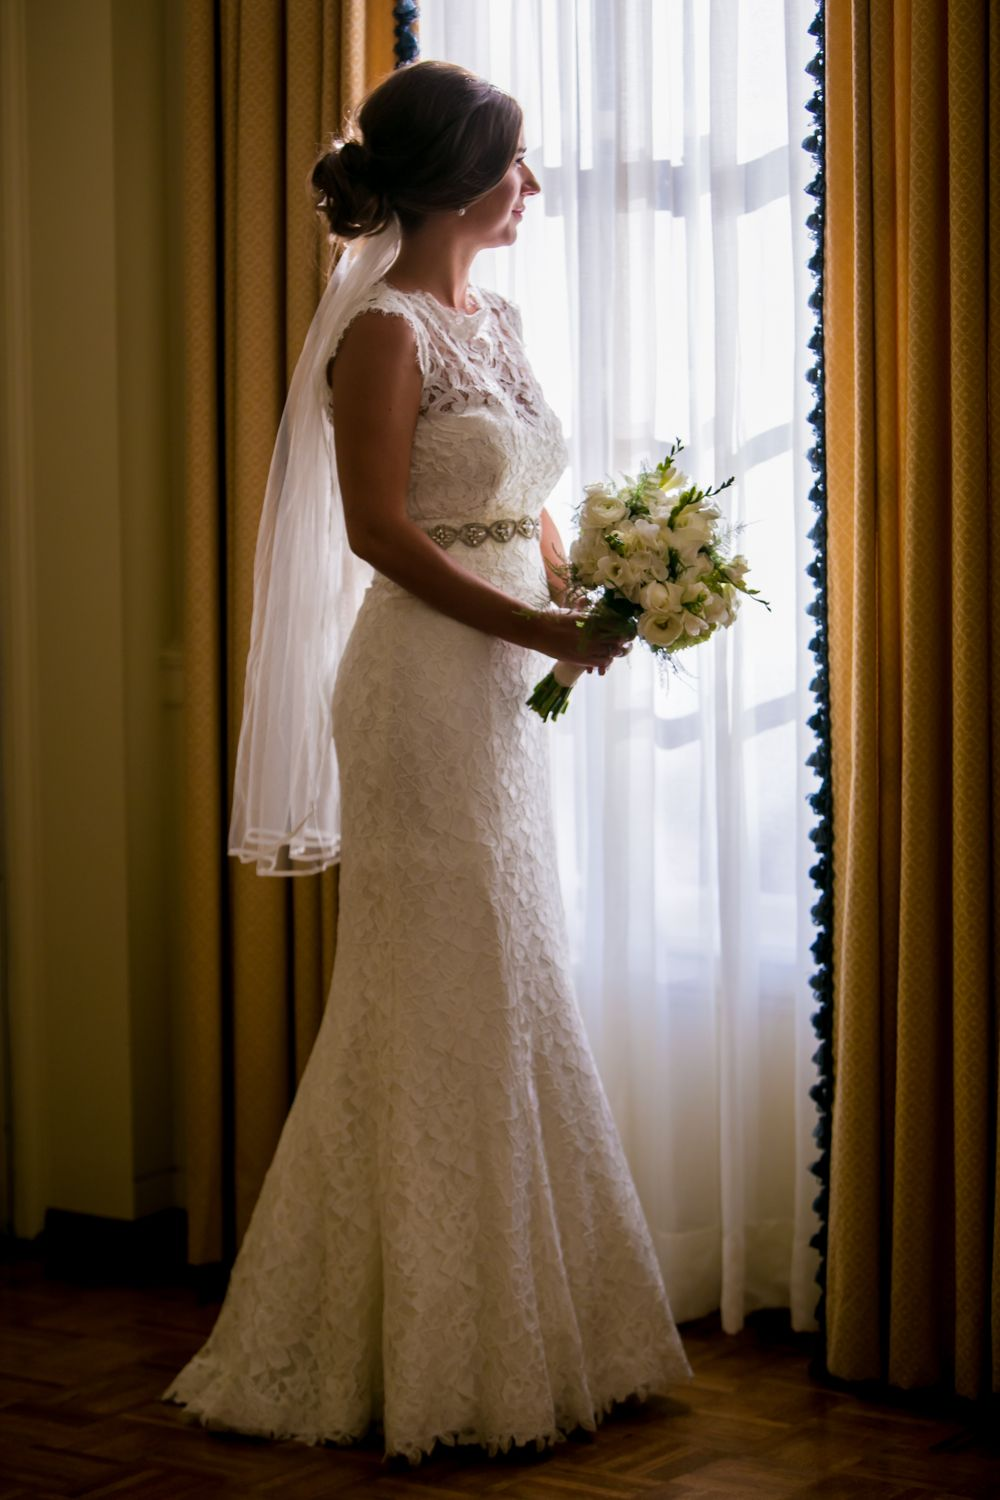 Bride Page looks out the window before her wedding at Eastminster Presbyterian Church in Columbia, SC.